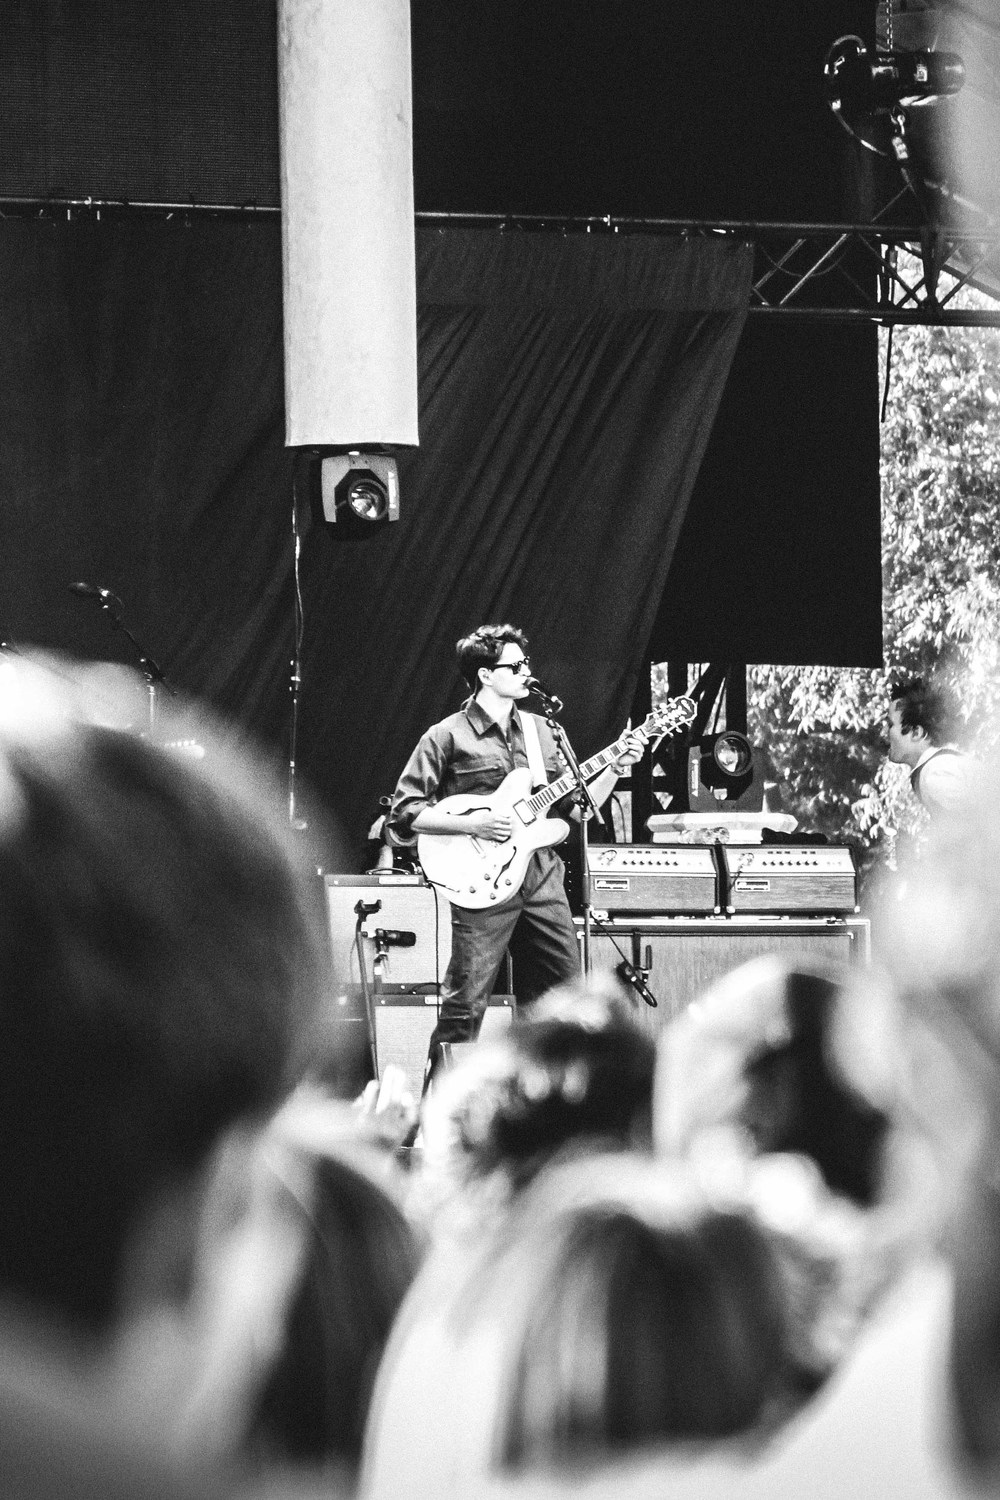 Melements_ACL_Festival-2013-6.jpg